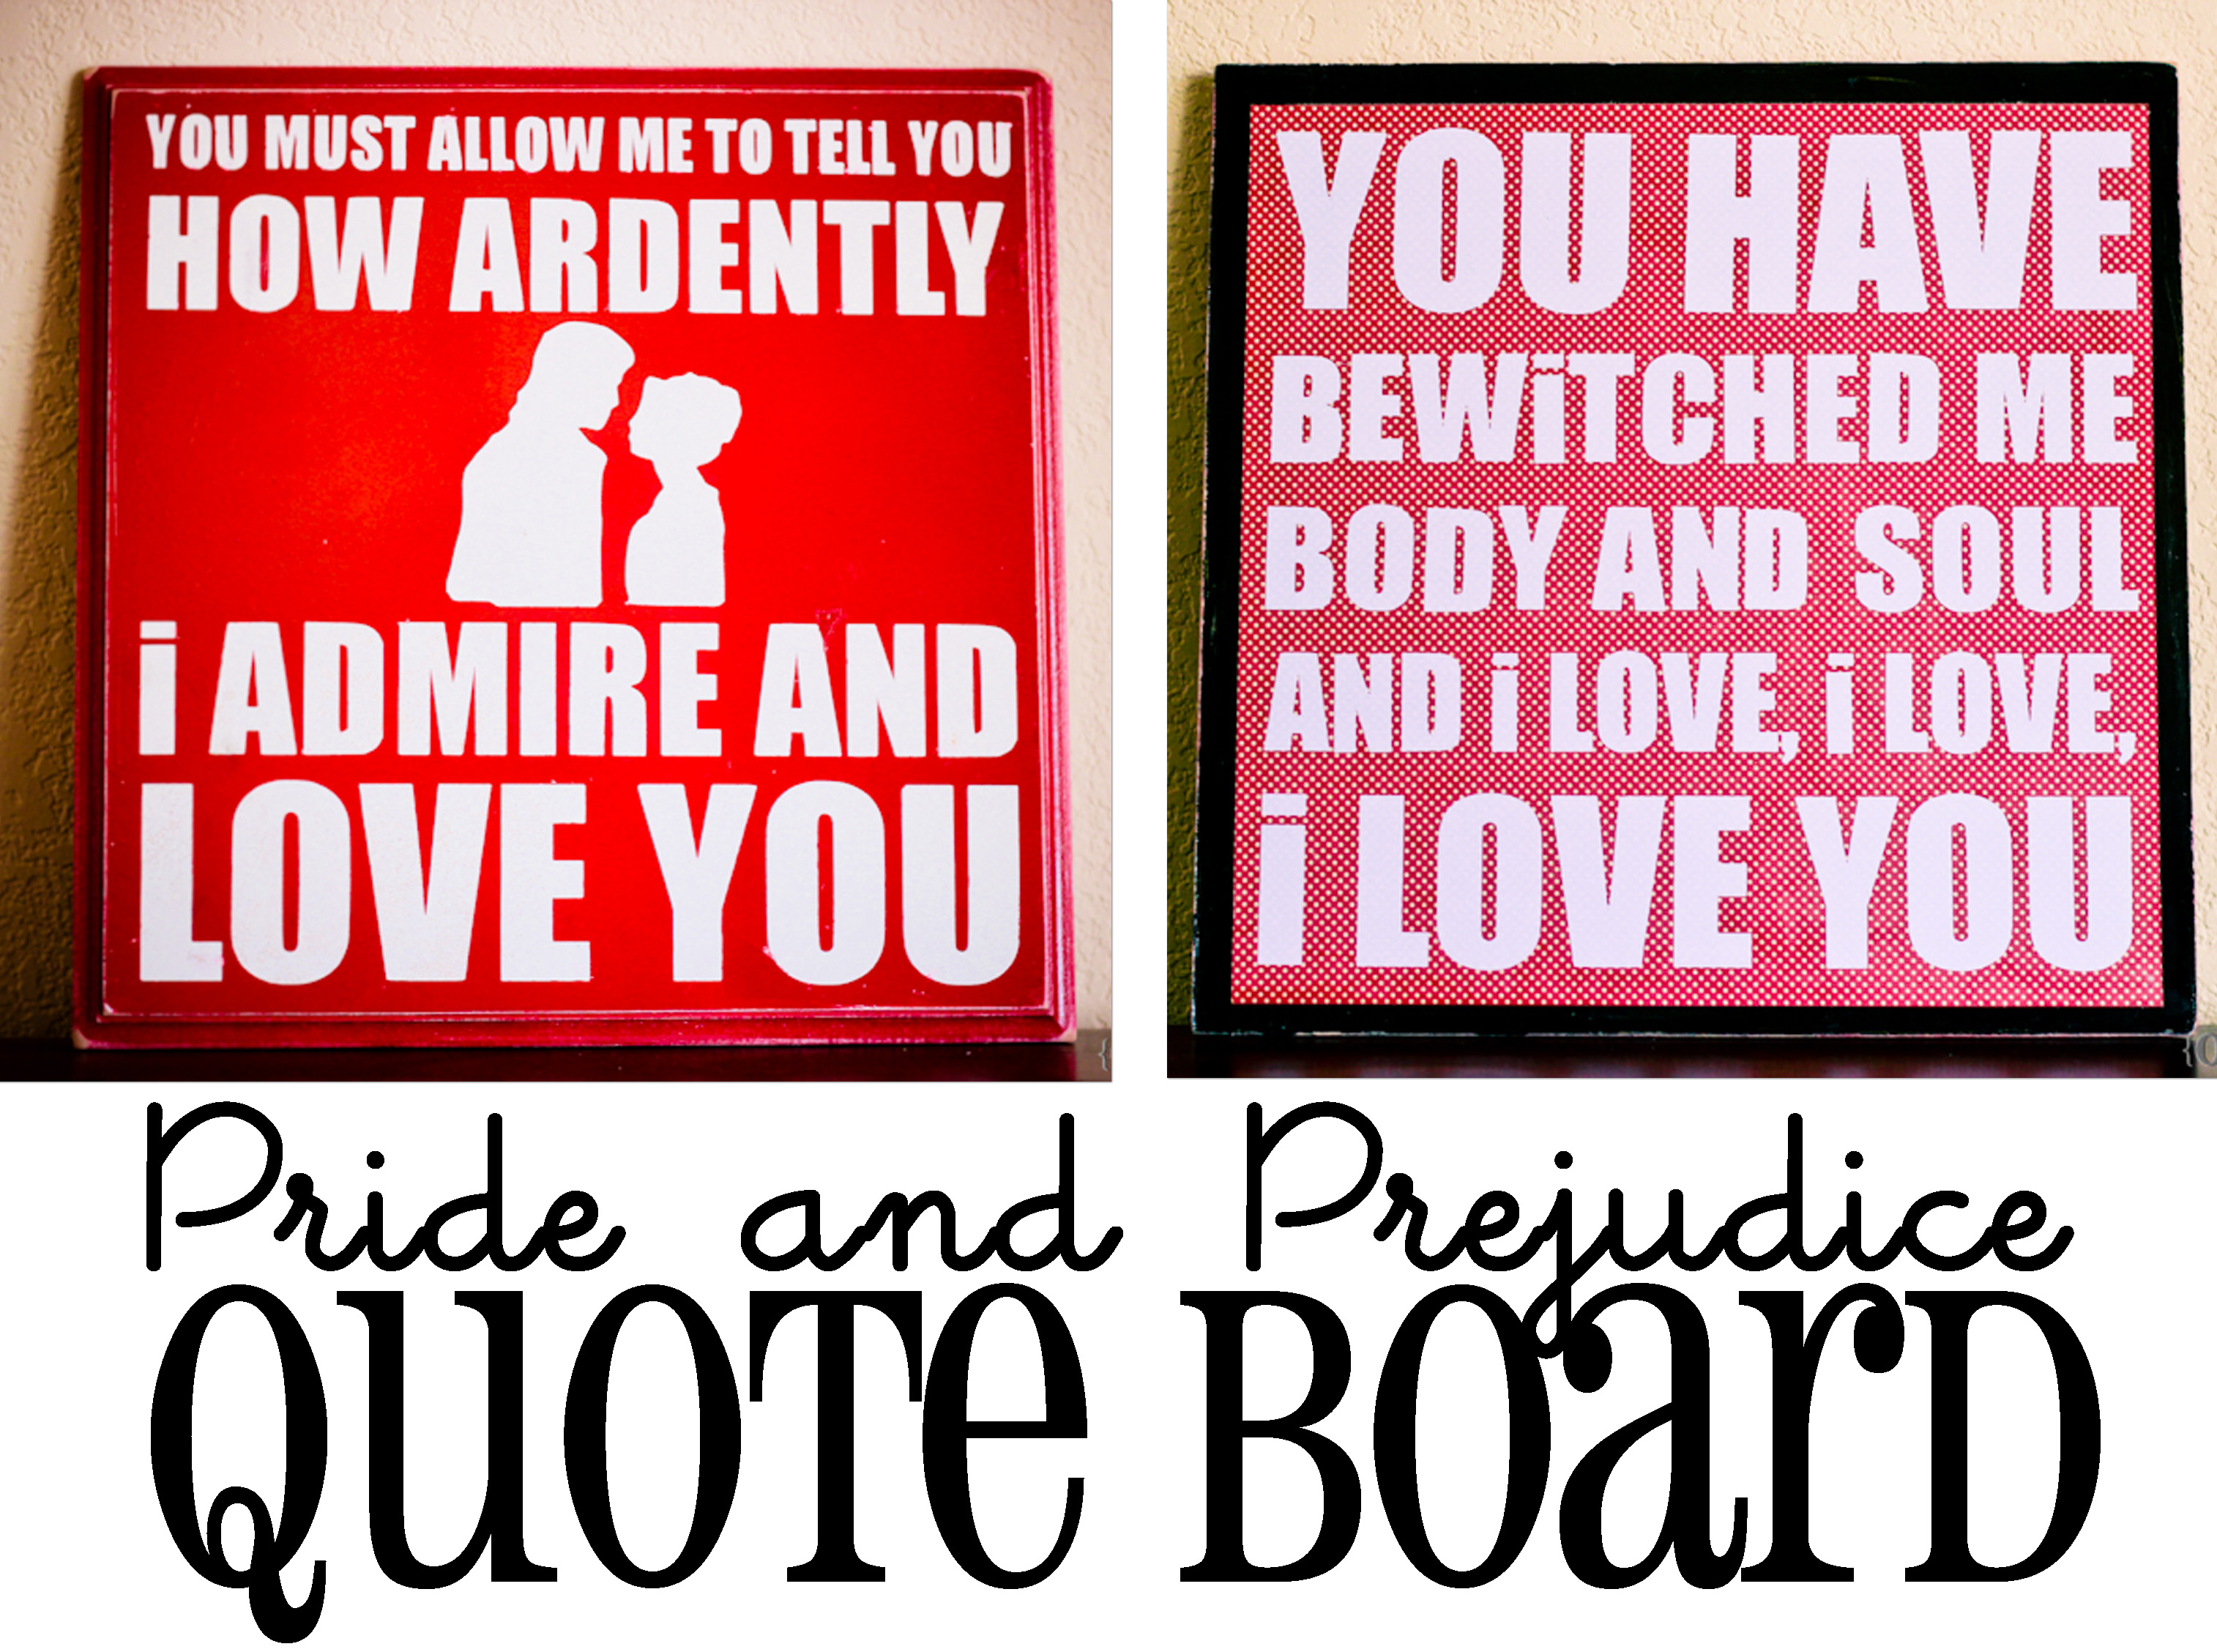 pride and prejudice quote board oopsey daisy